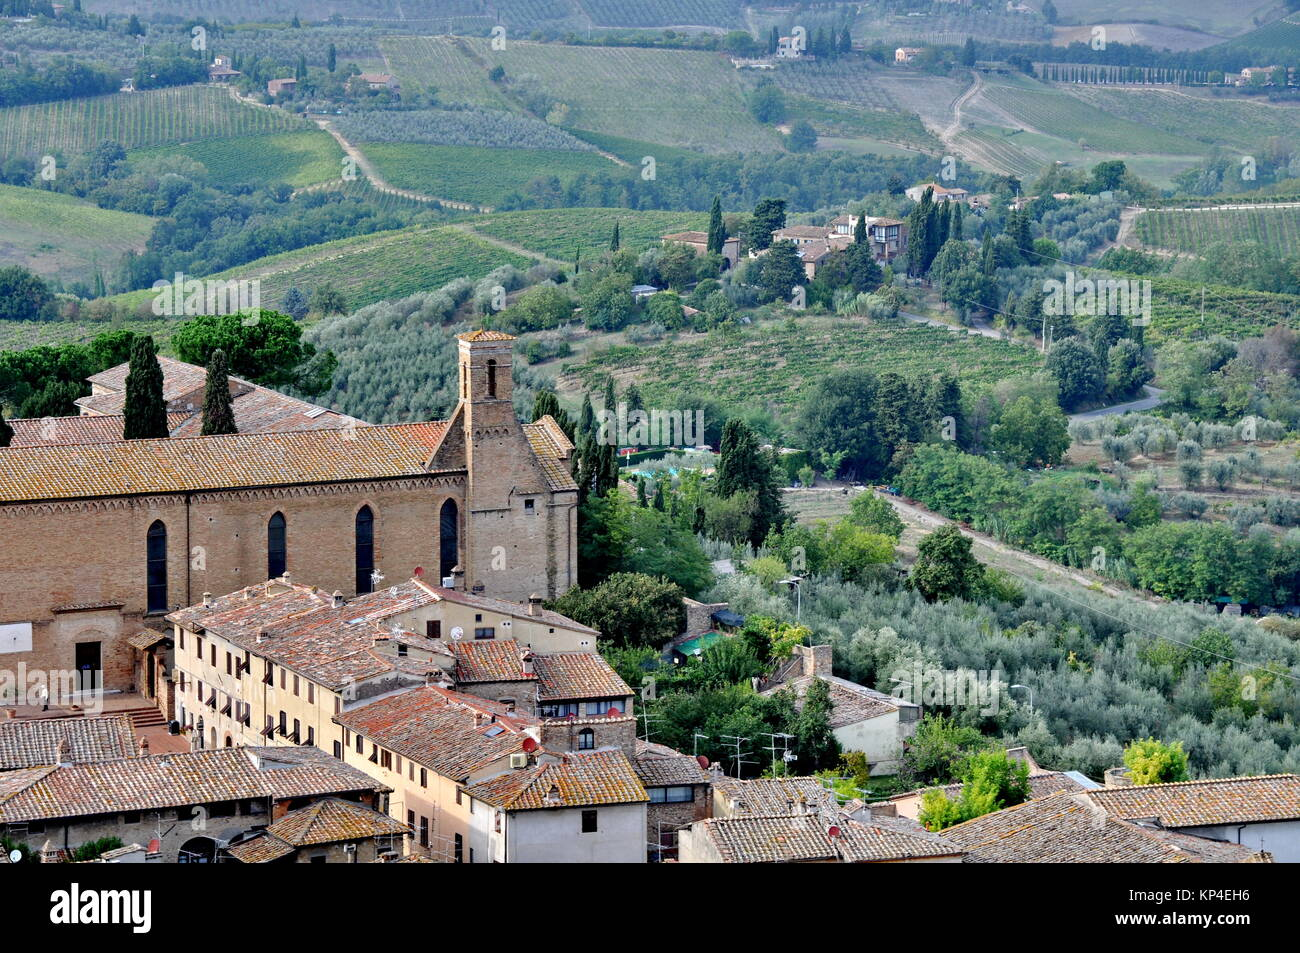 San Gimignano a medieval town in Tuscany, Italy - Stock Image